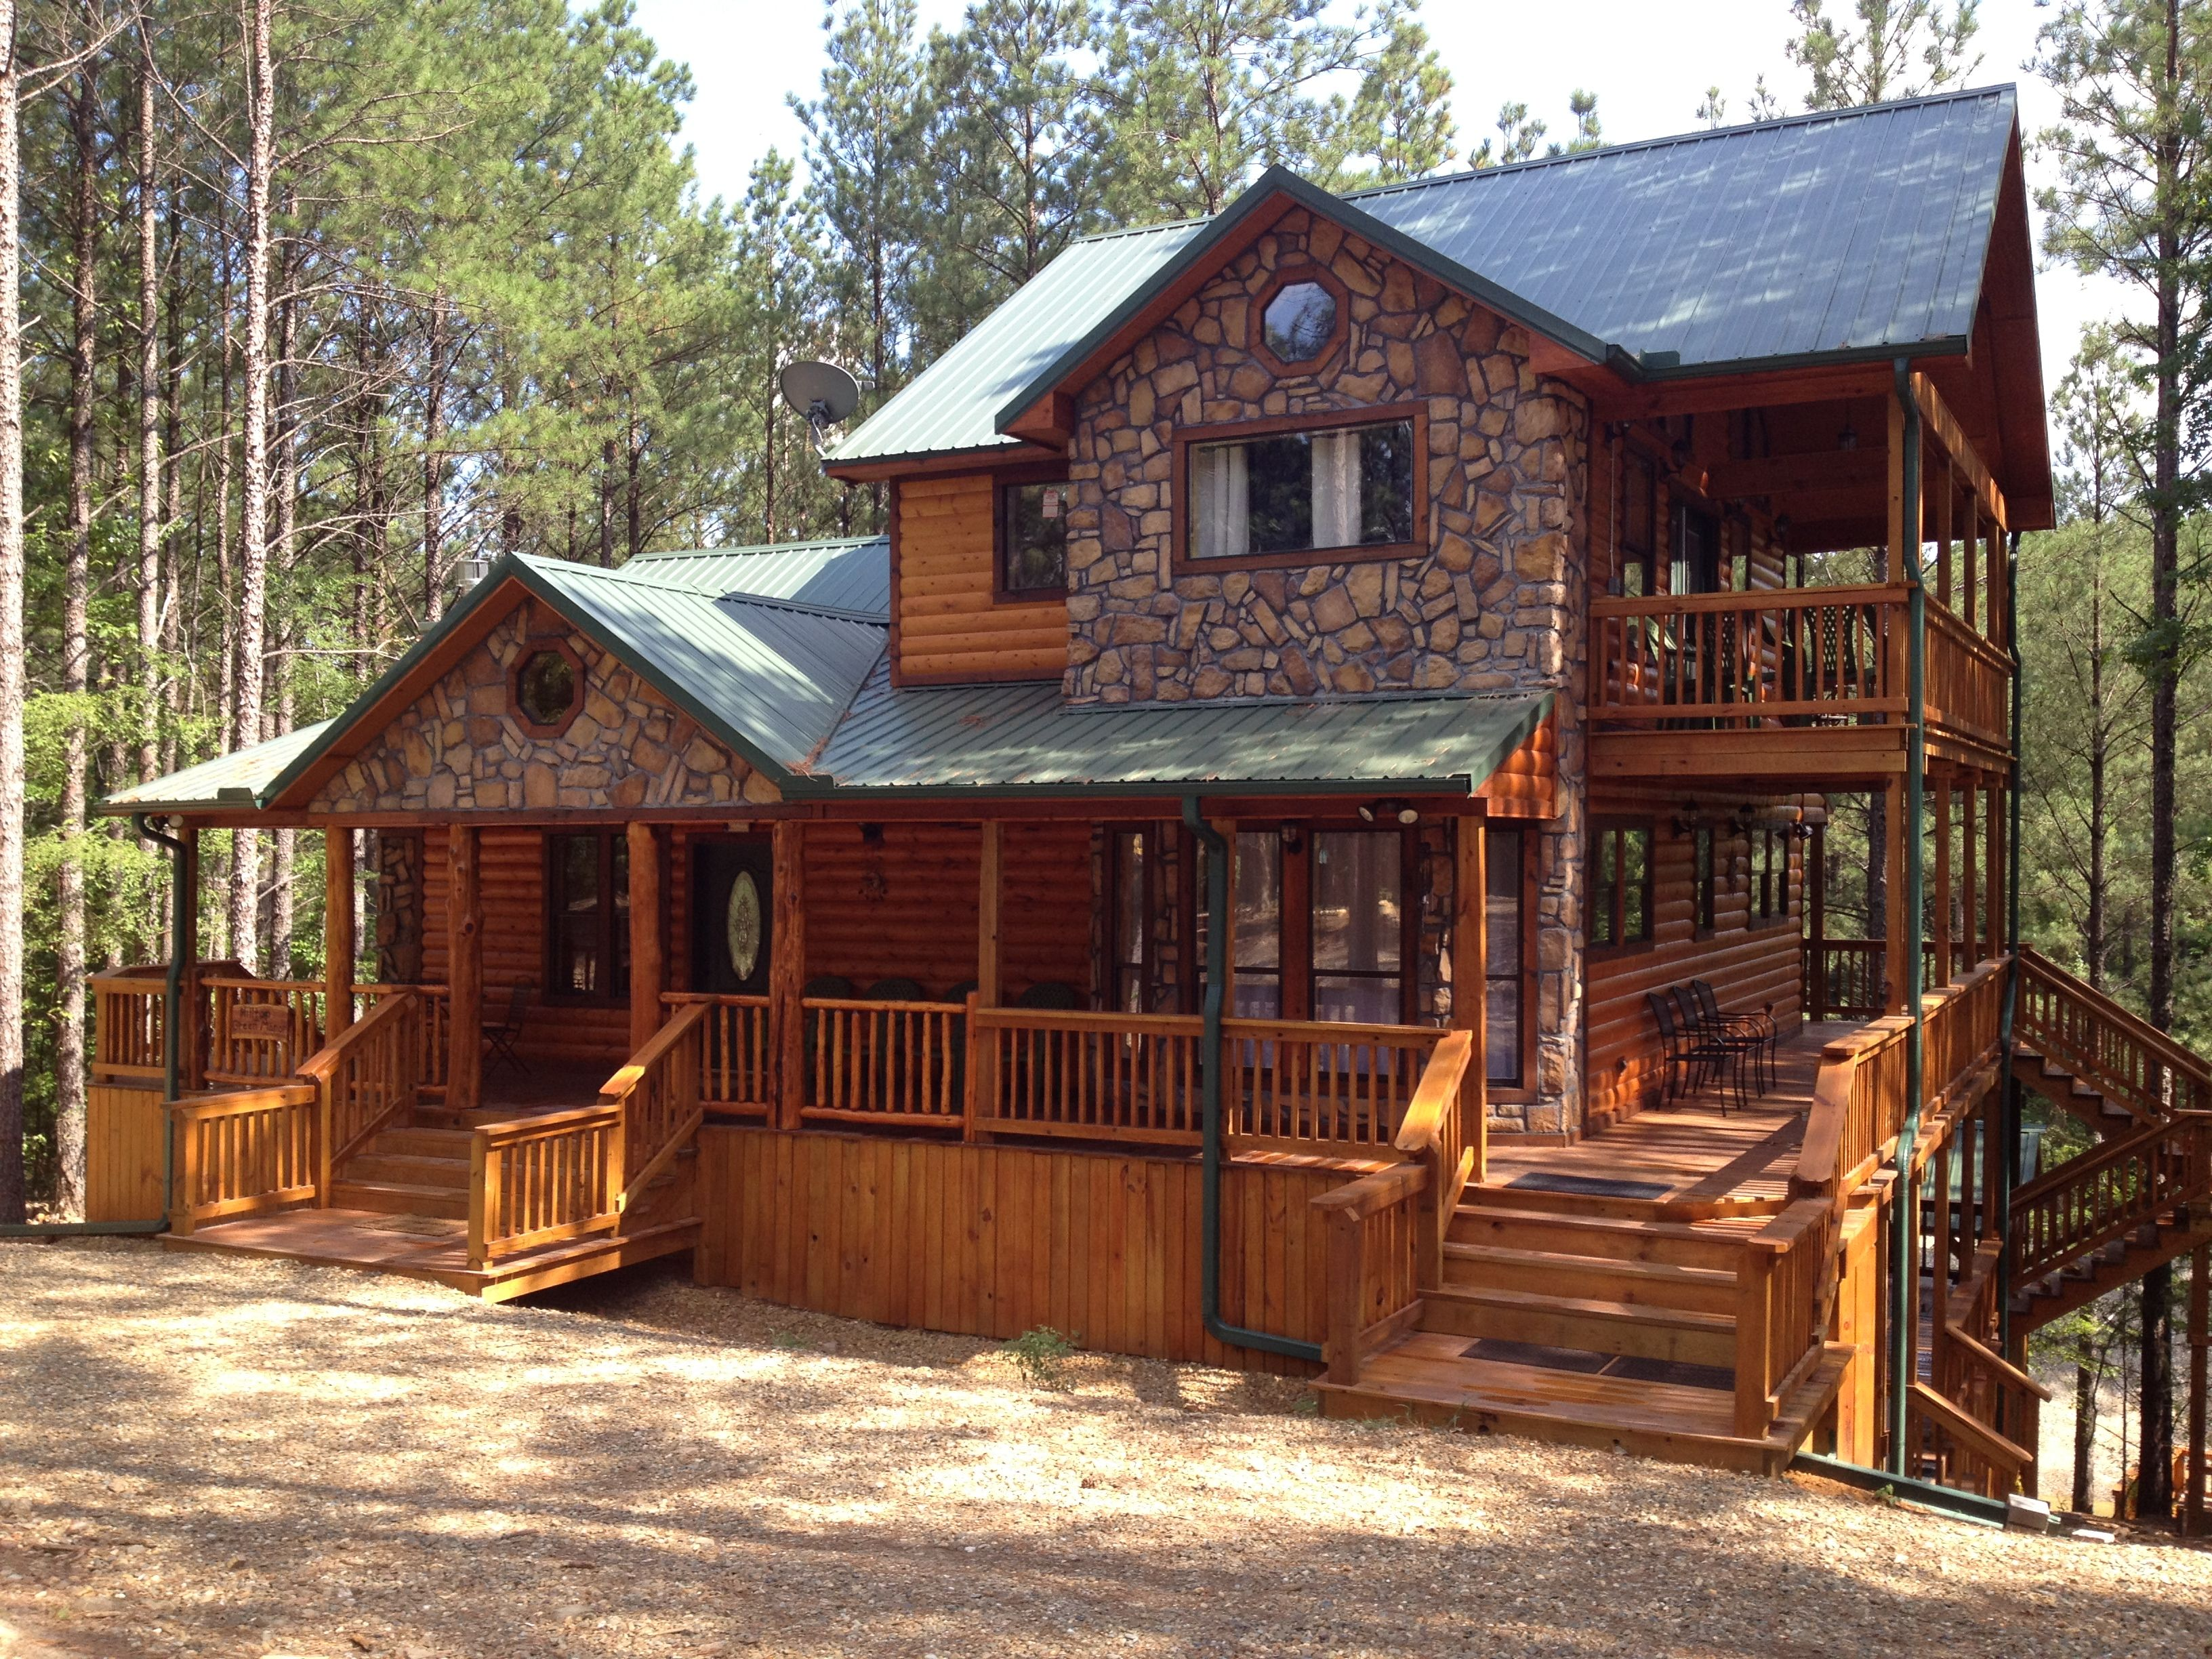 Nice Luxury Log Home Builders #10: Best 25+ Luxury Log Cabins Ideas On Pinterest | Log Houses, Mountain Homes  And Big Lotto